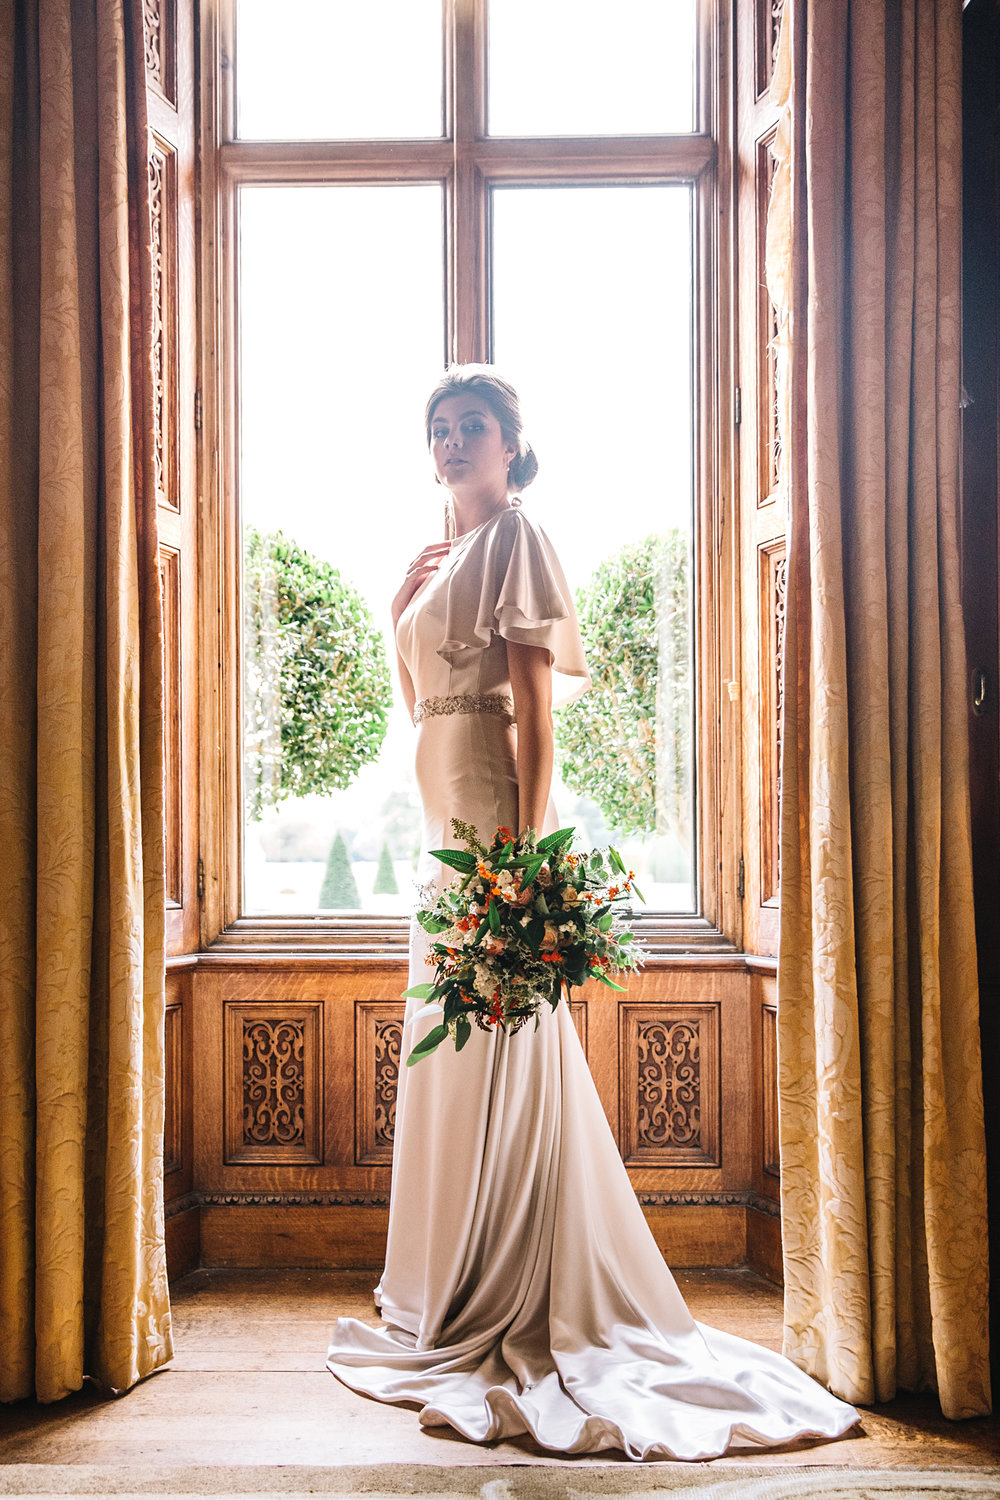 Norfolk_Brides_Wedding_Prima_Donna_Bottom_Drawer_Bridal_Somerleyton_Hall_Photographer_Esther_Wild_IMG_5836.jpg